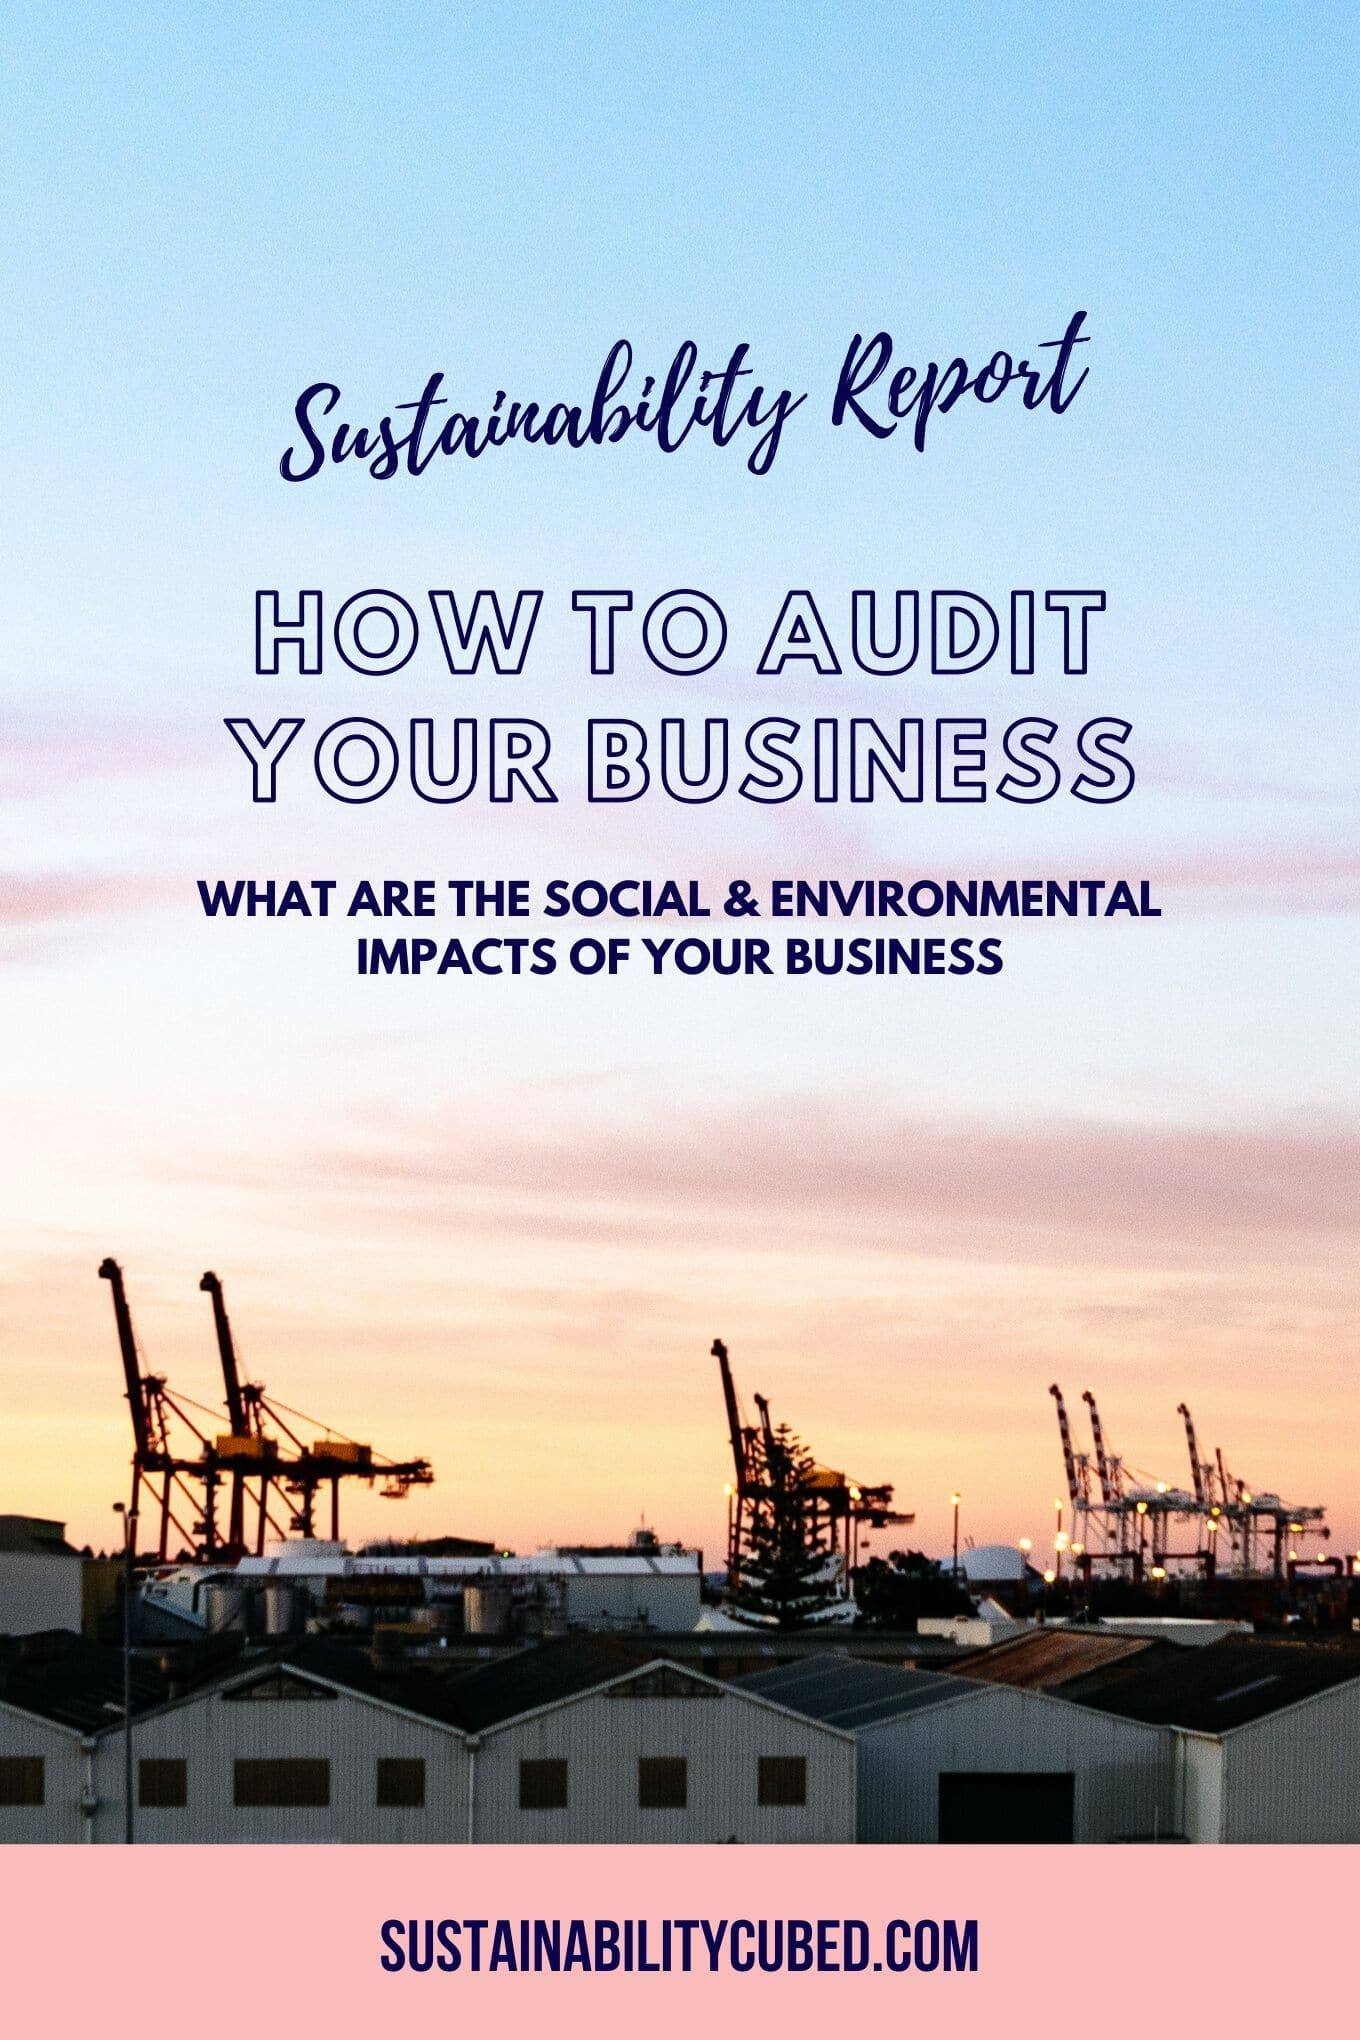 Sustainability Report: A Transparent Business Audit